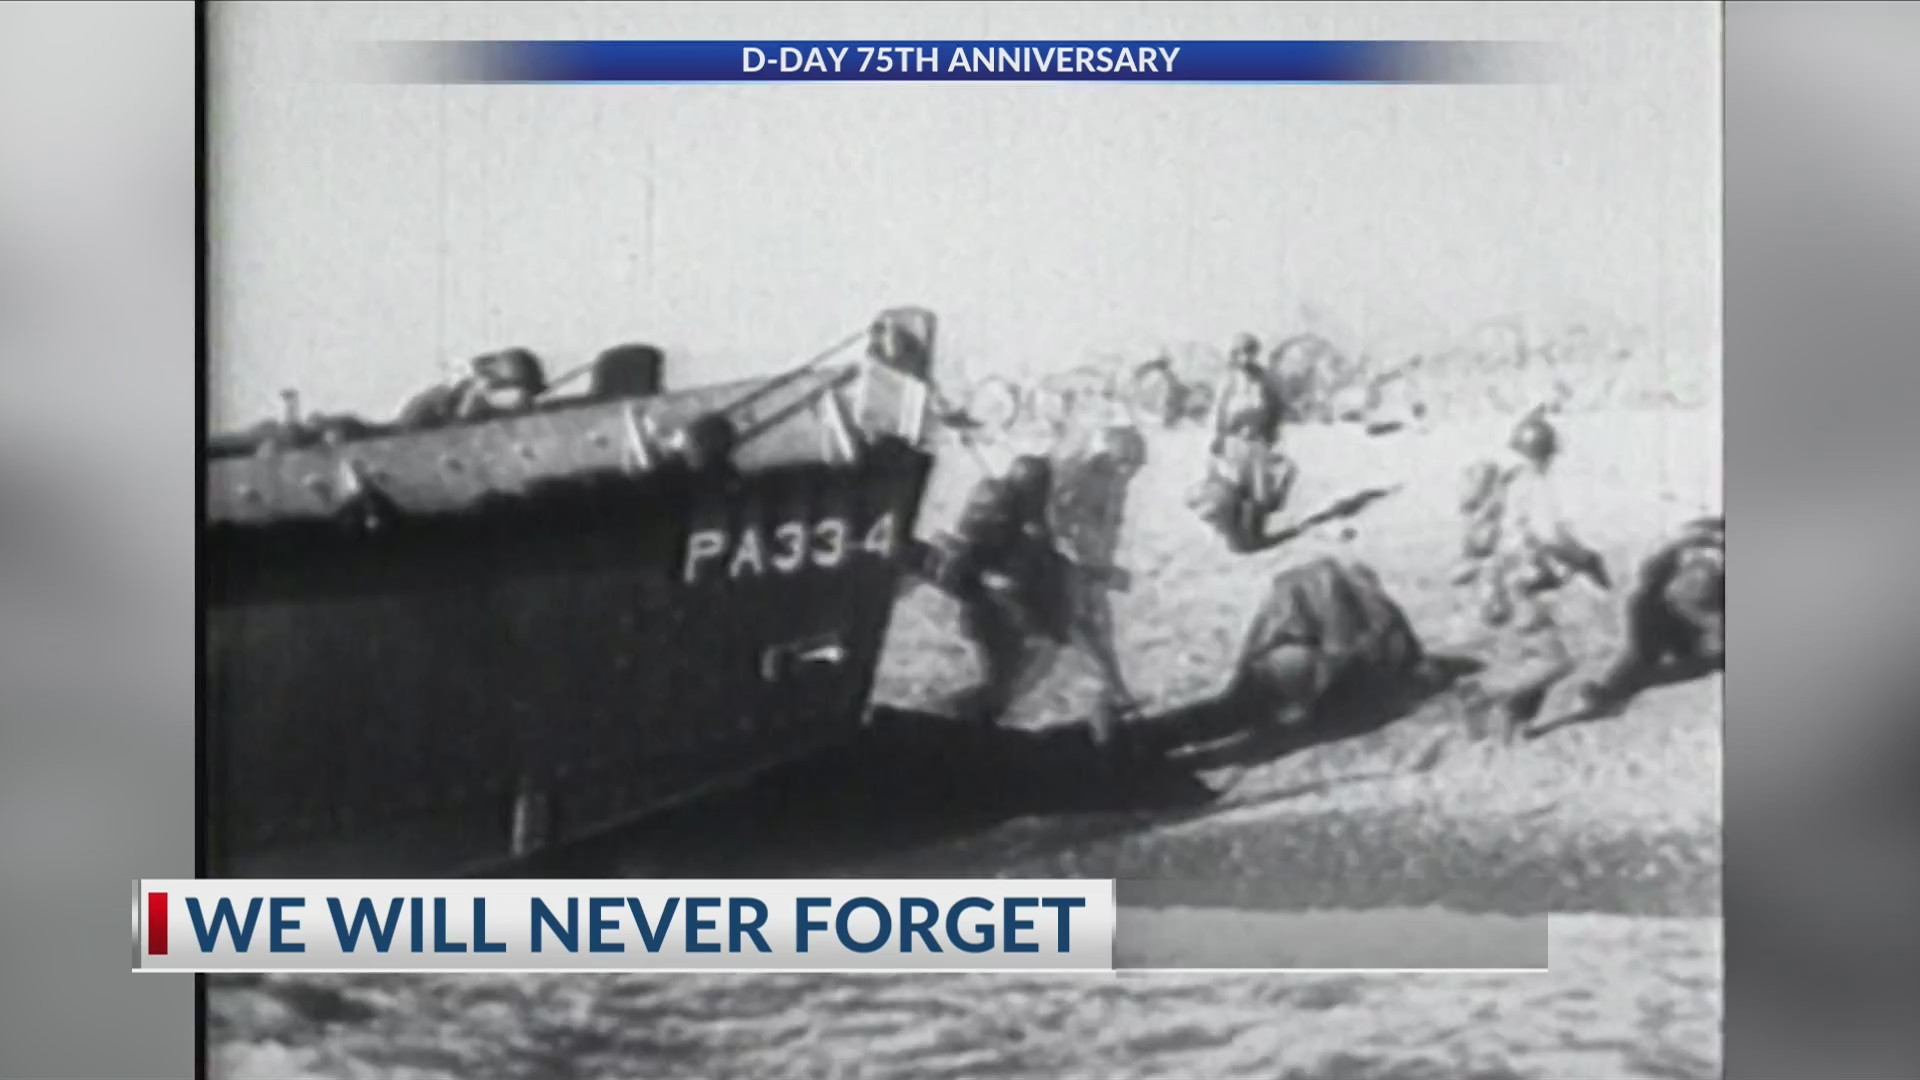 We_Will_Never_Forget_1_20190607035435